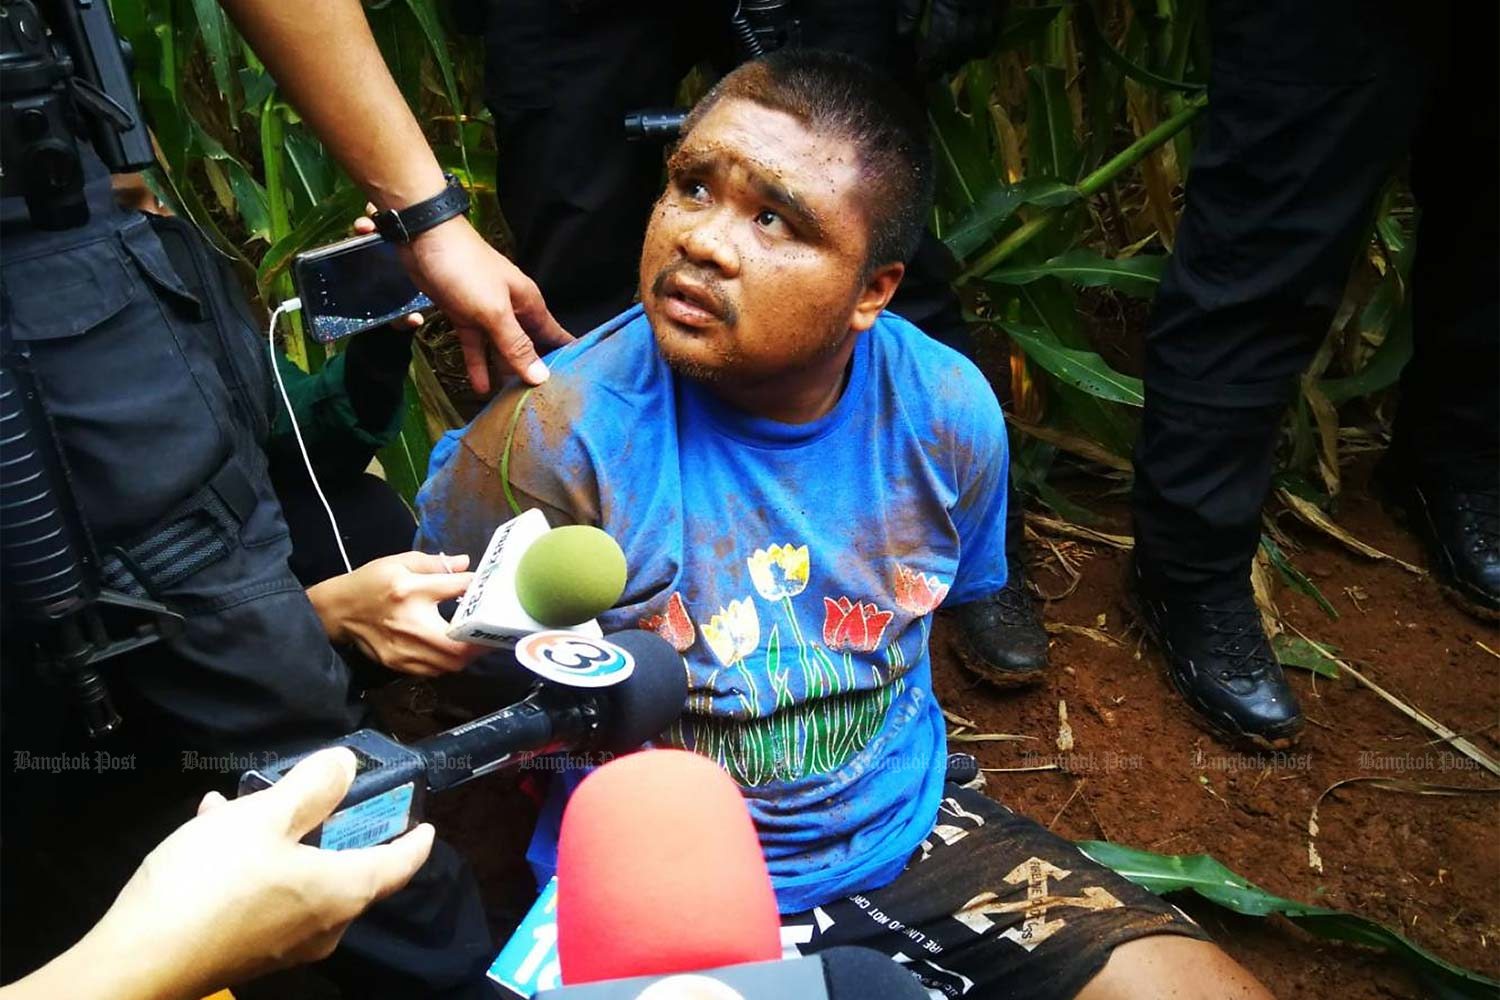 Suspect Arnon Kiram, 21, is captured in a corn field near his house in Tha Luang district of Lop Buri yesterday. (Photo by Wassayos Ngamkham)